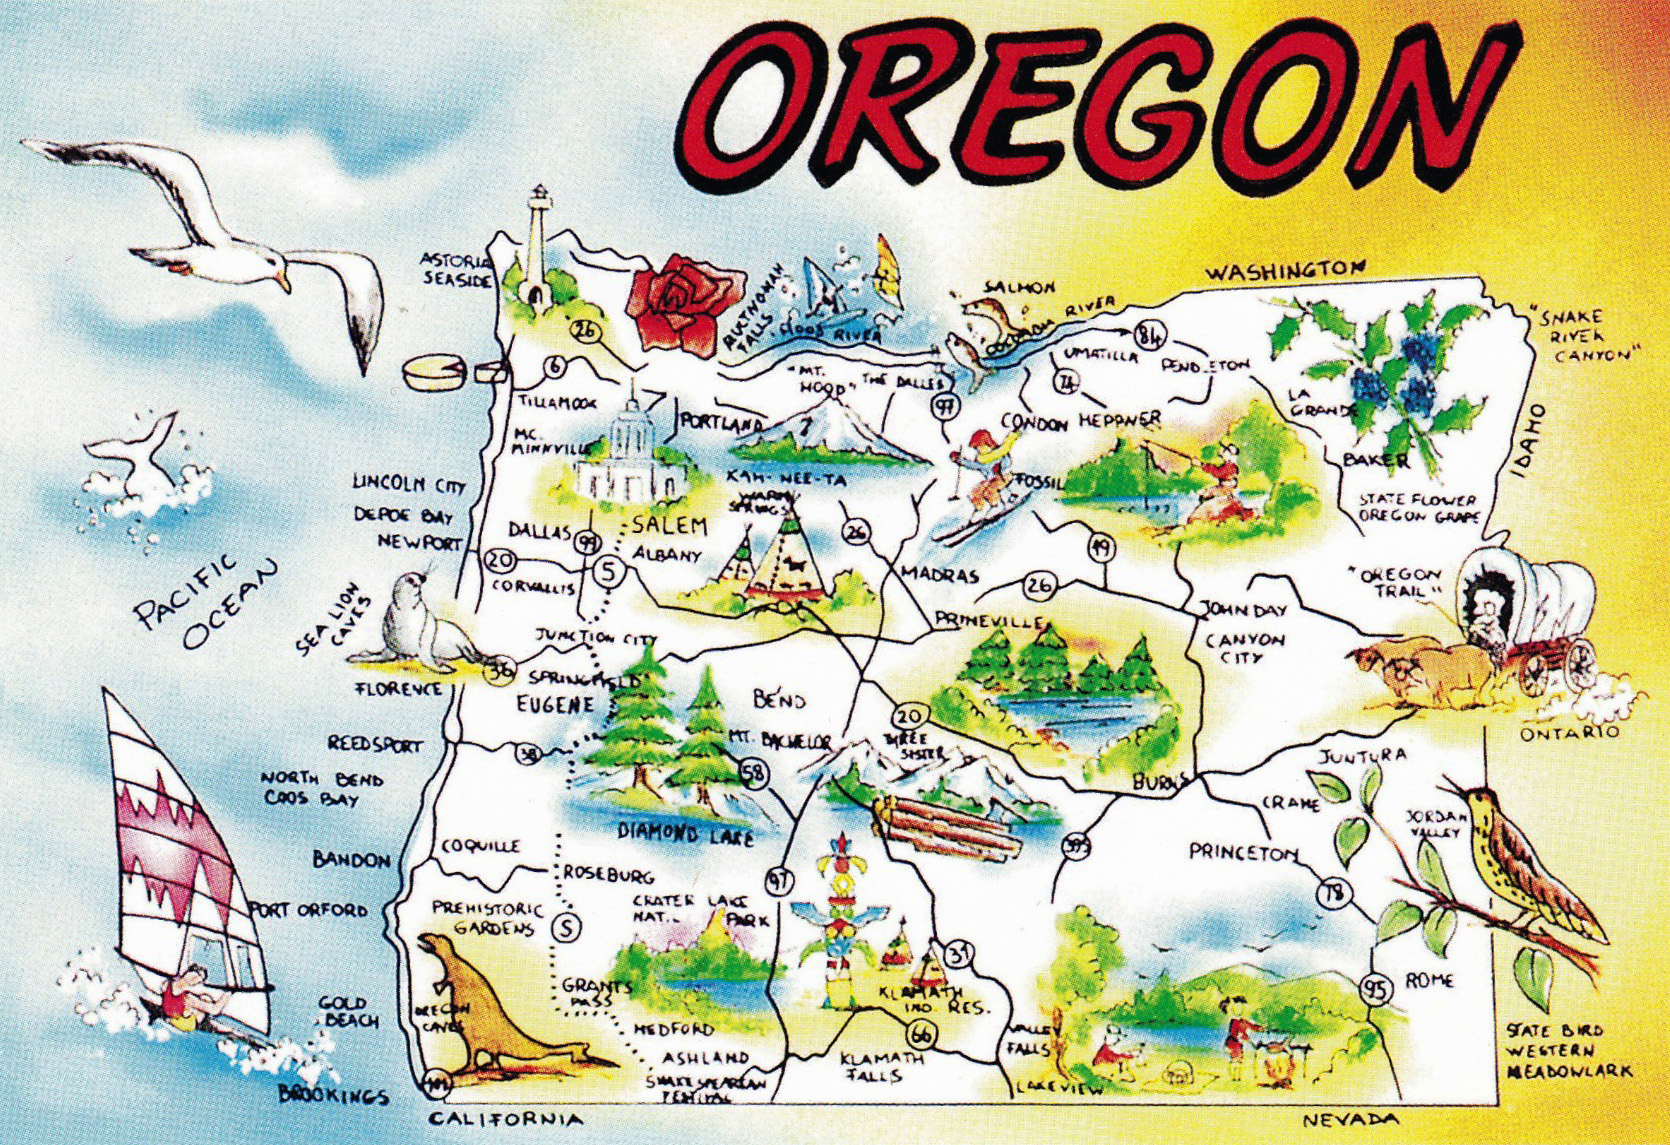 Large Tourist Illustrated Map Of Oregon State Oregon State USA - Map of orgeon